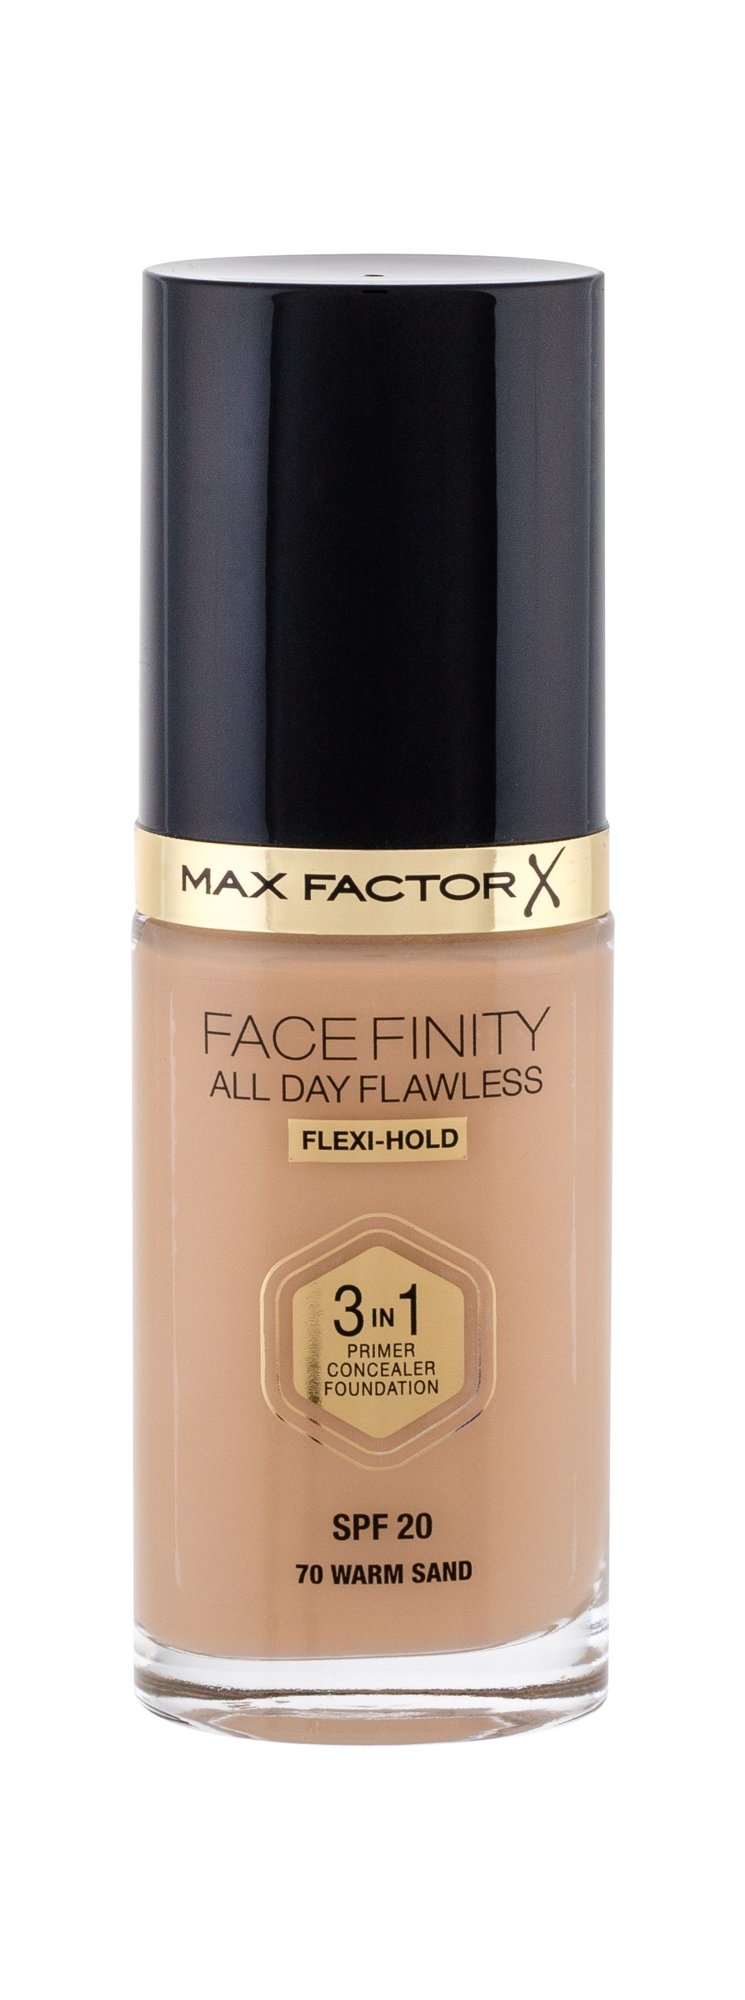 Max Factor Facefinity Makeup 30ml 70 Warm Sand